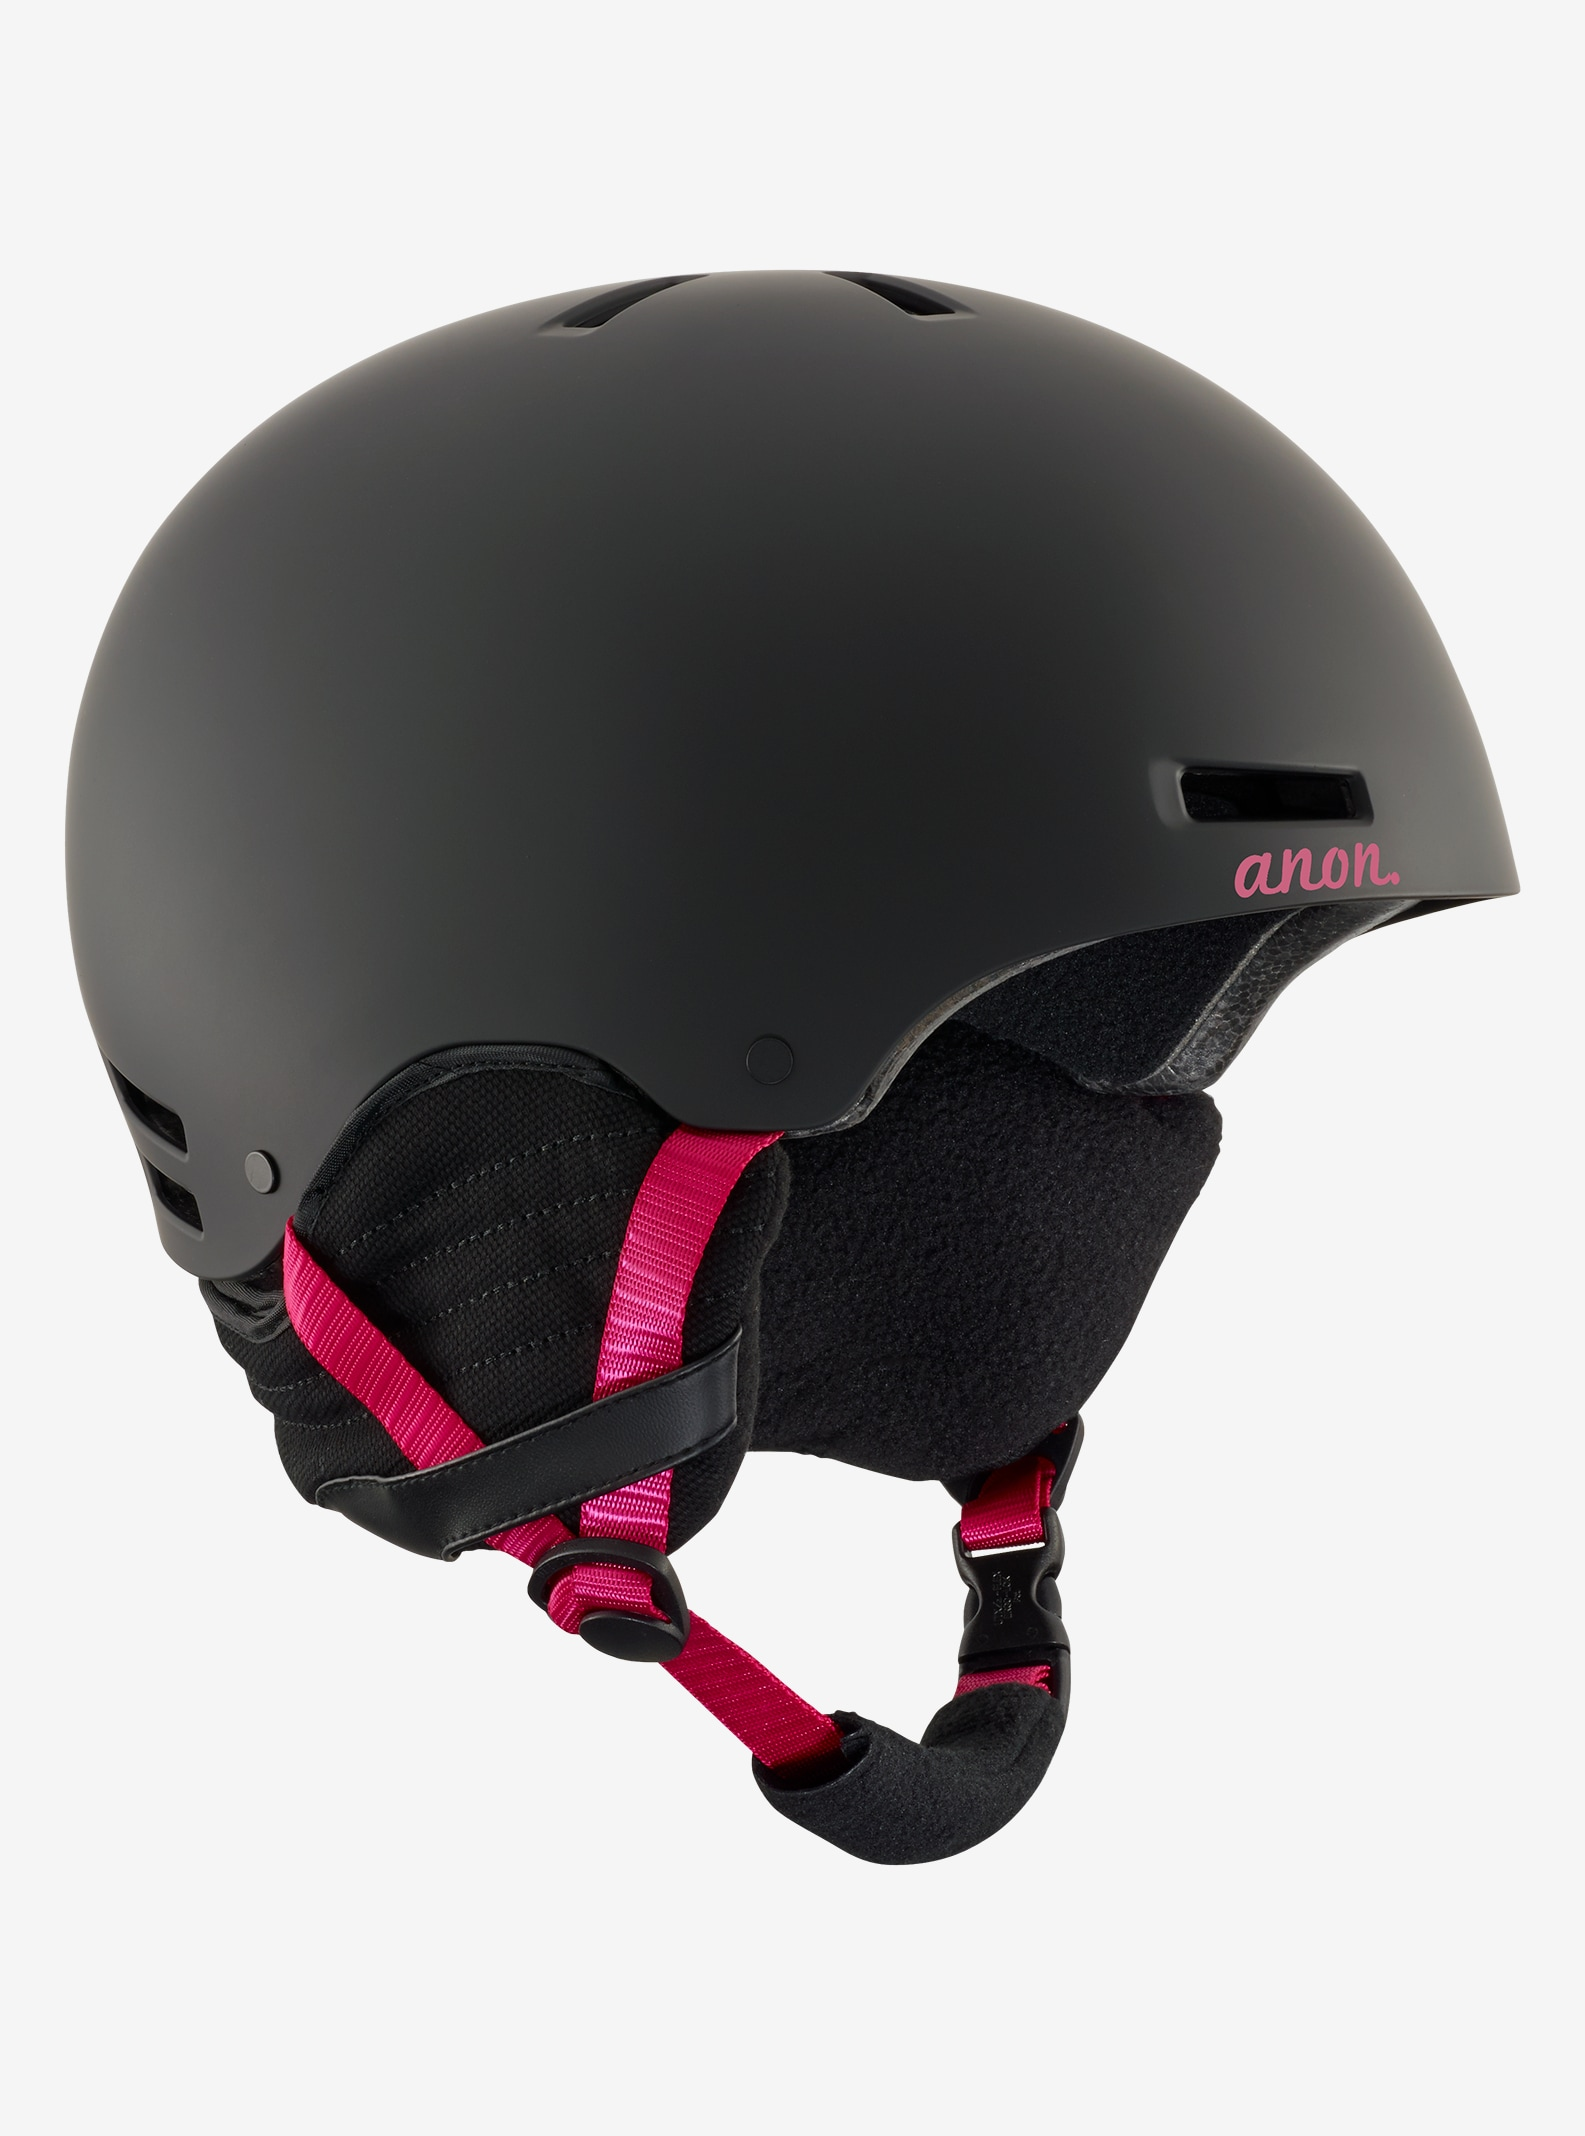 Women's Anon Greta Helmet shown in Black Cherry